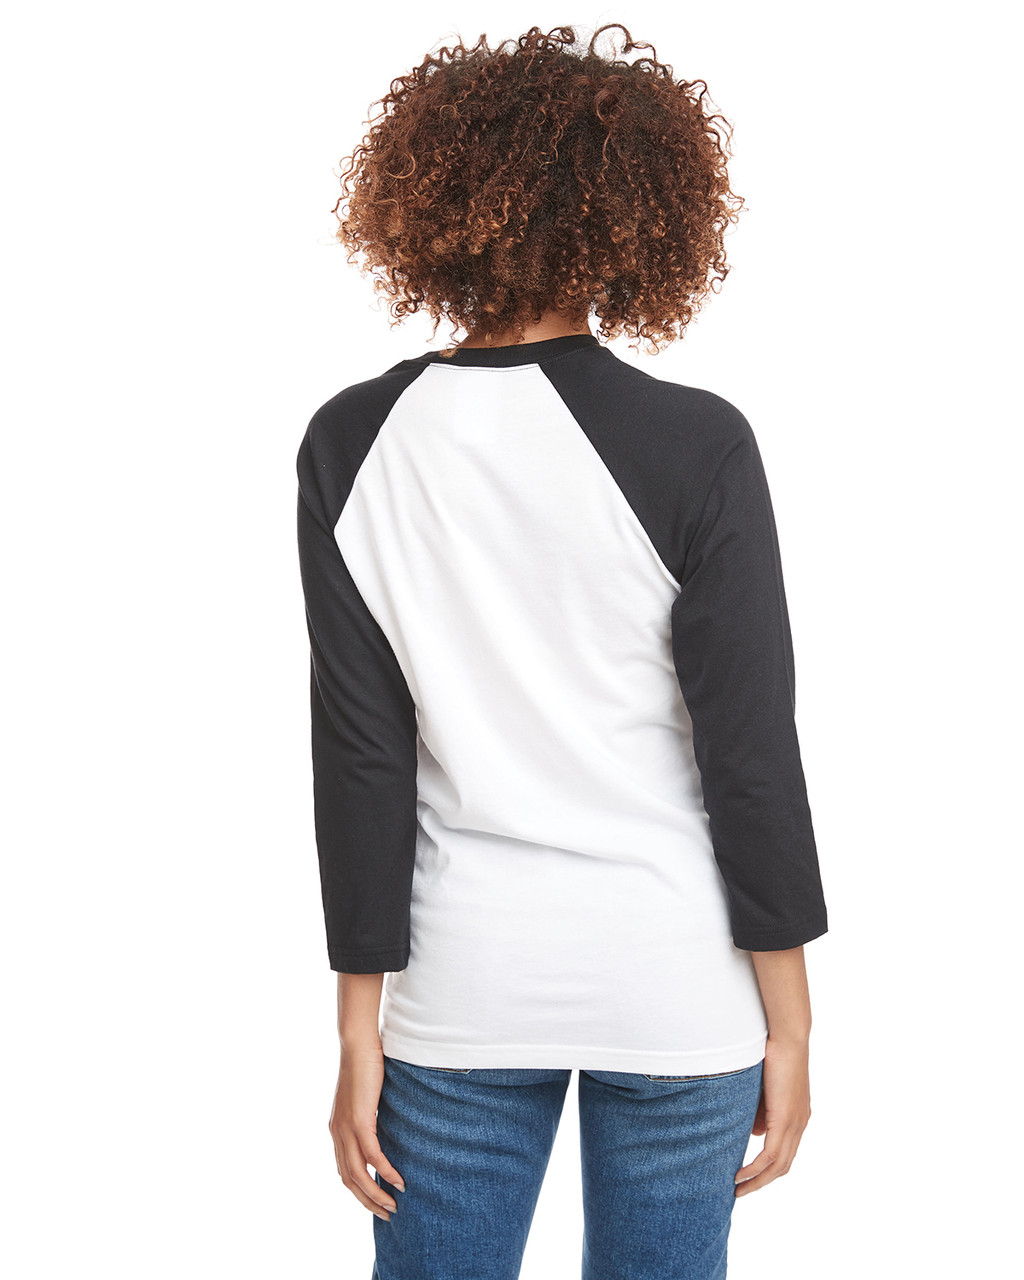 Black/White - Back, 6251 Next Level Unisex CVC 3/4 Sleeve Raglan Baseball T-Shirt | BlankClothing.ca